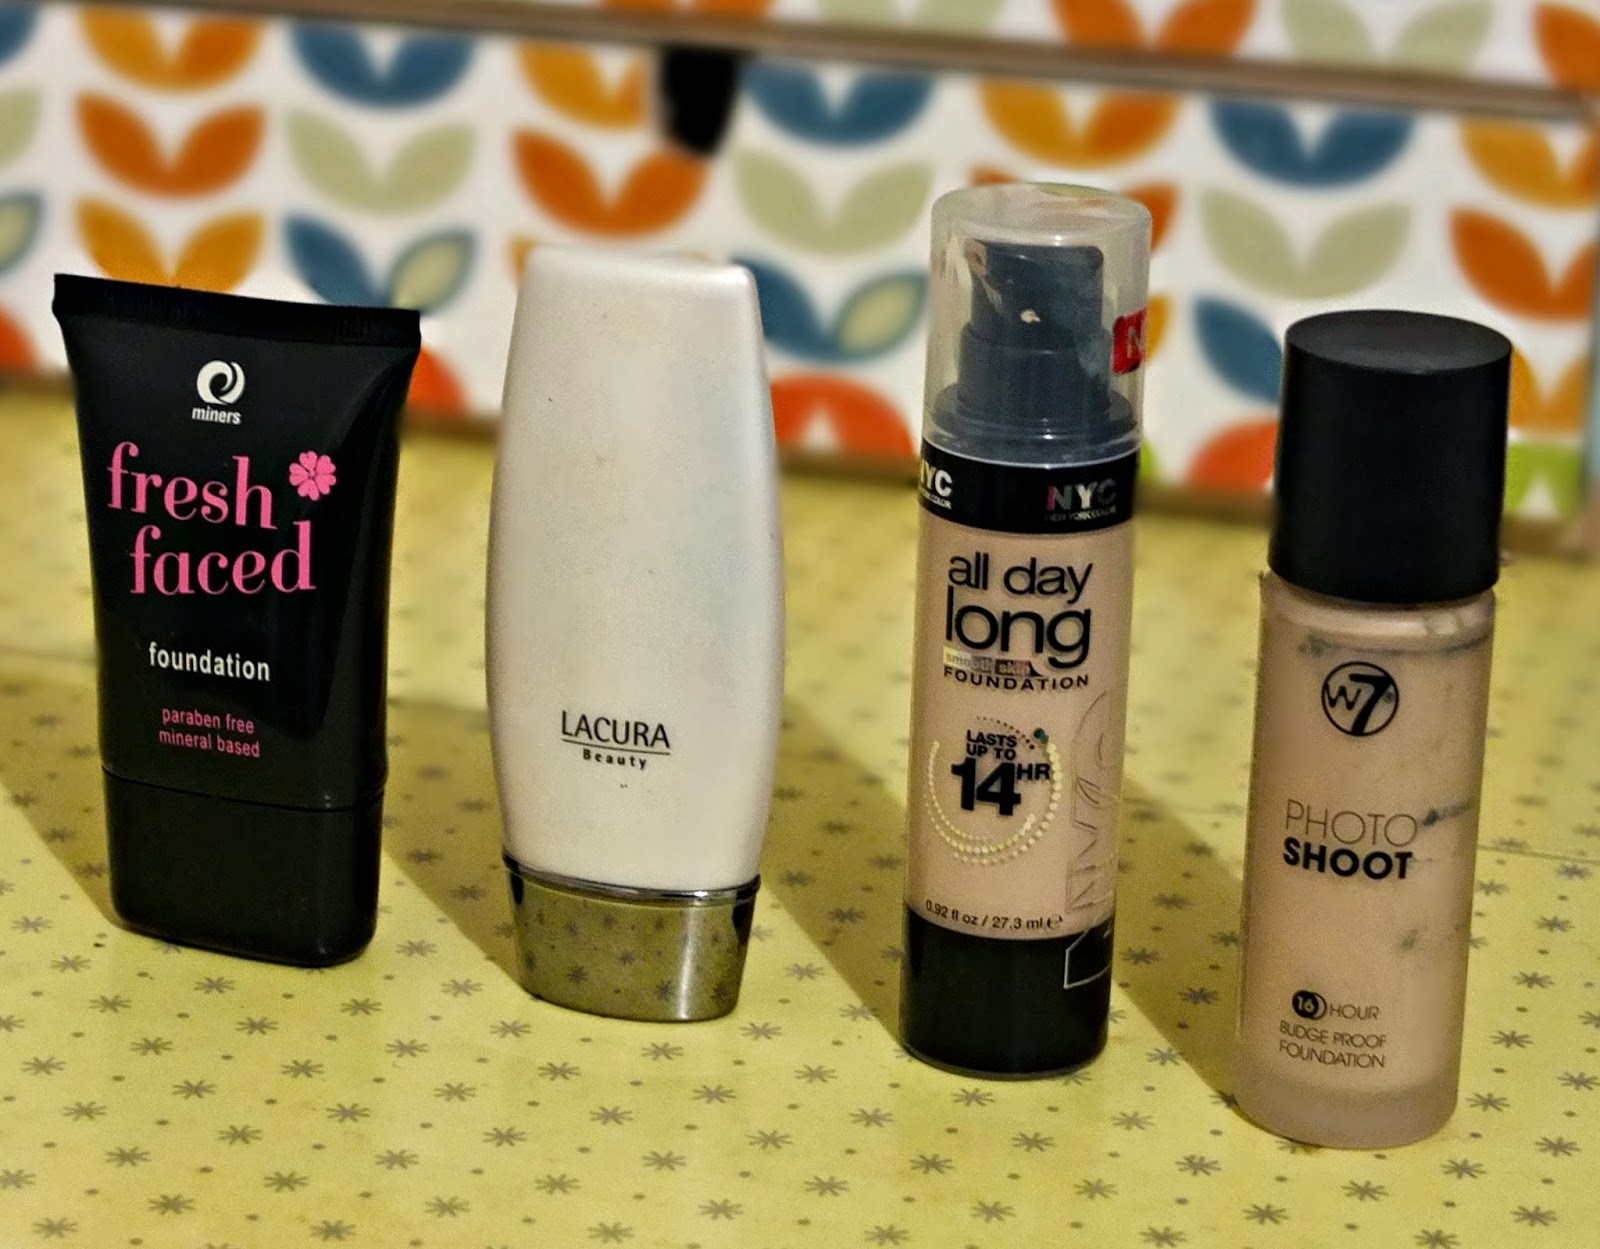 A review of favourite foundations under £5 on Hello Terri Lowe UK beauty blog. Featuring Miners, Lacura, NYC and W7 foundations.